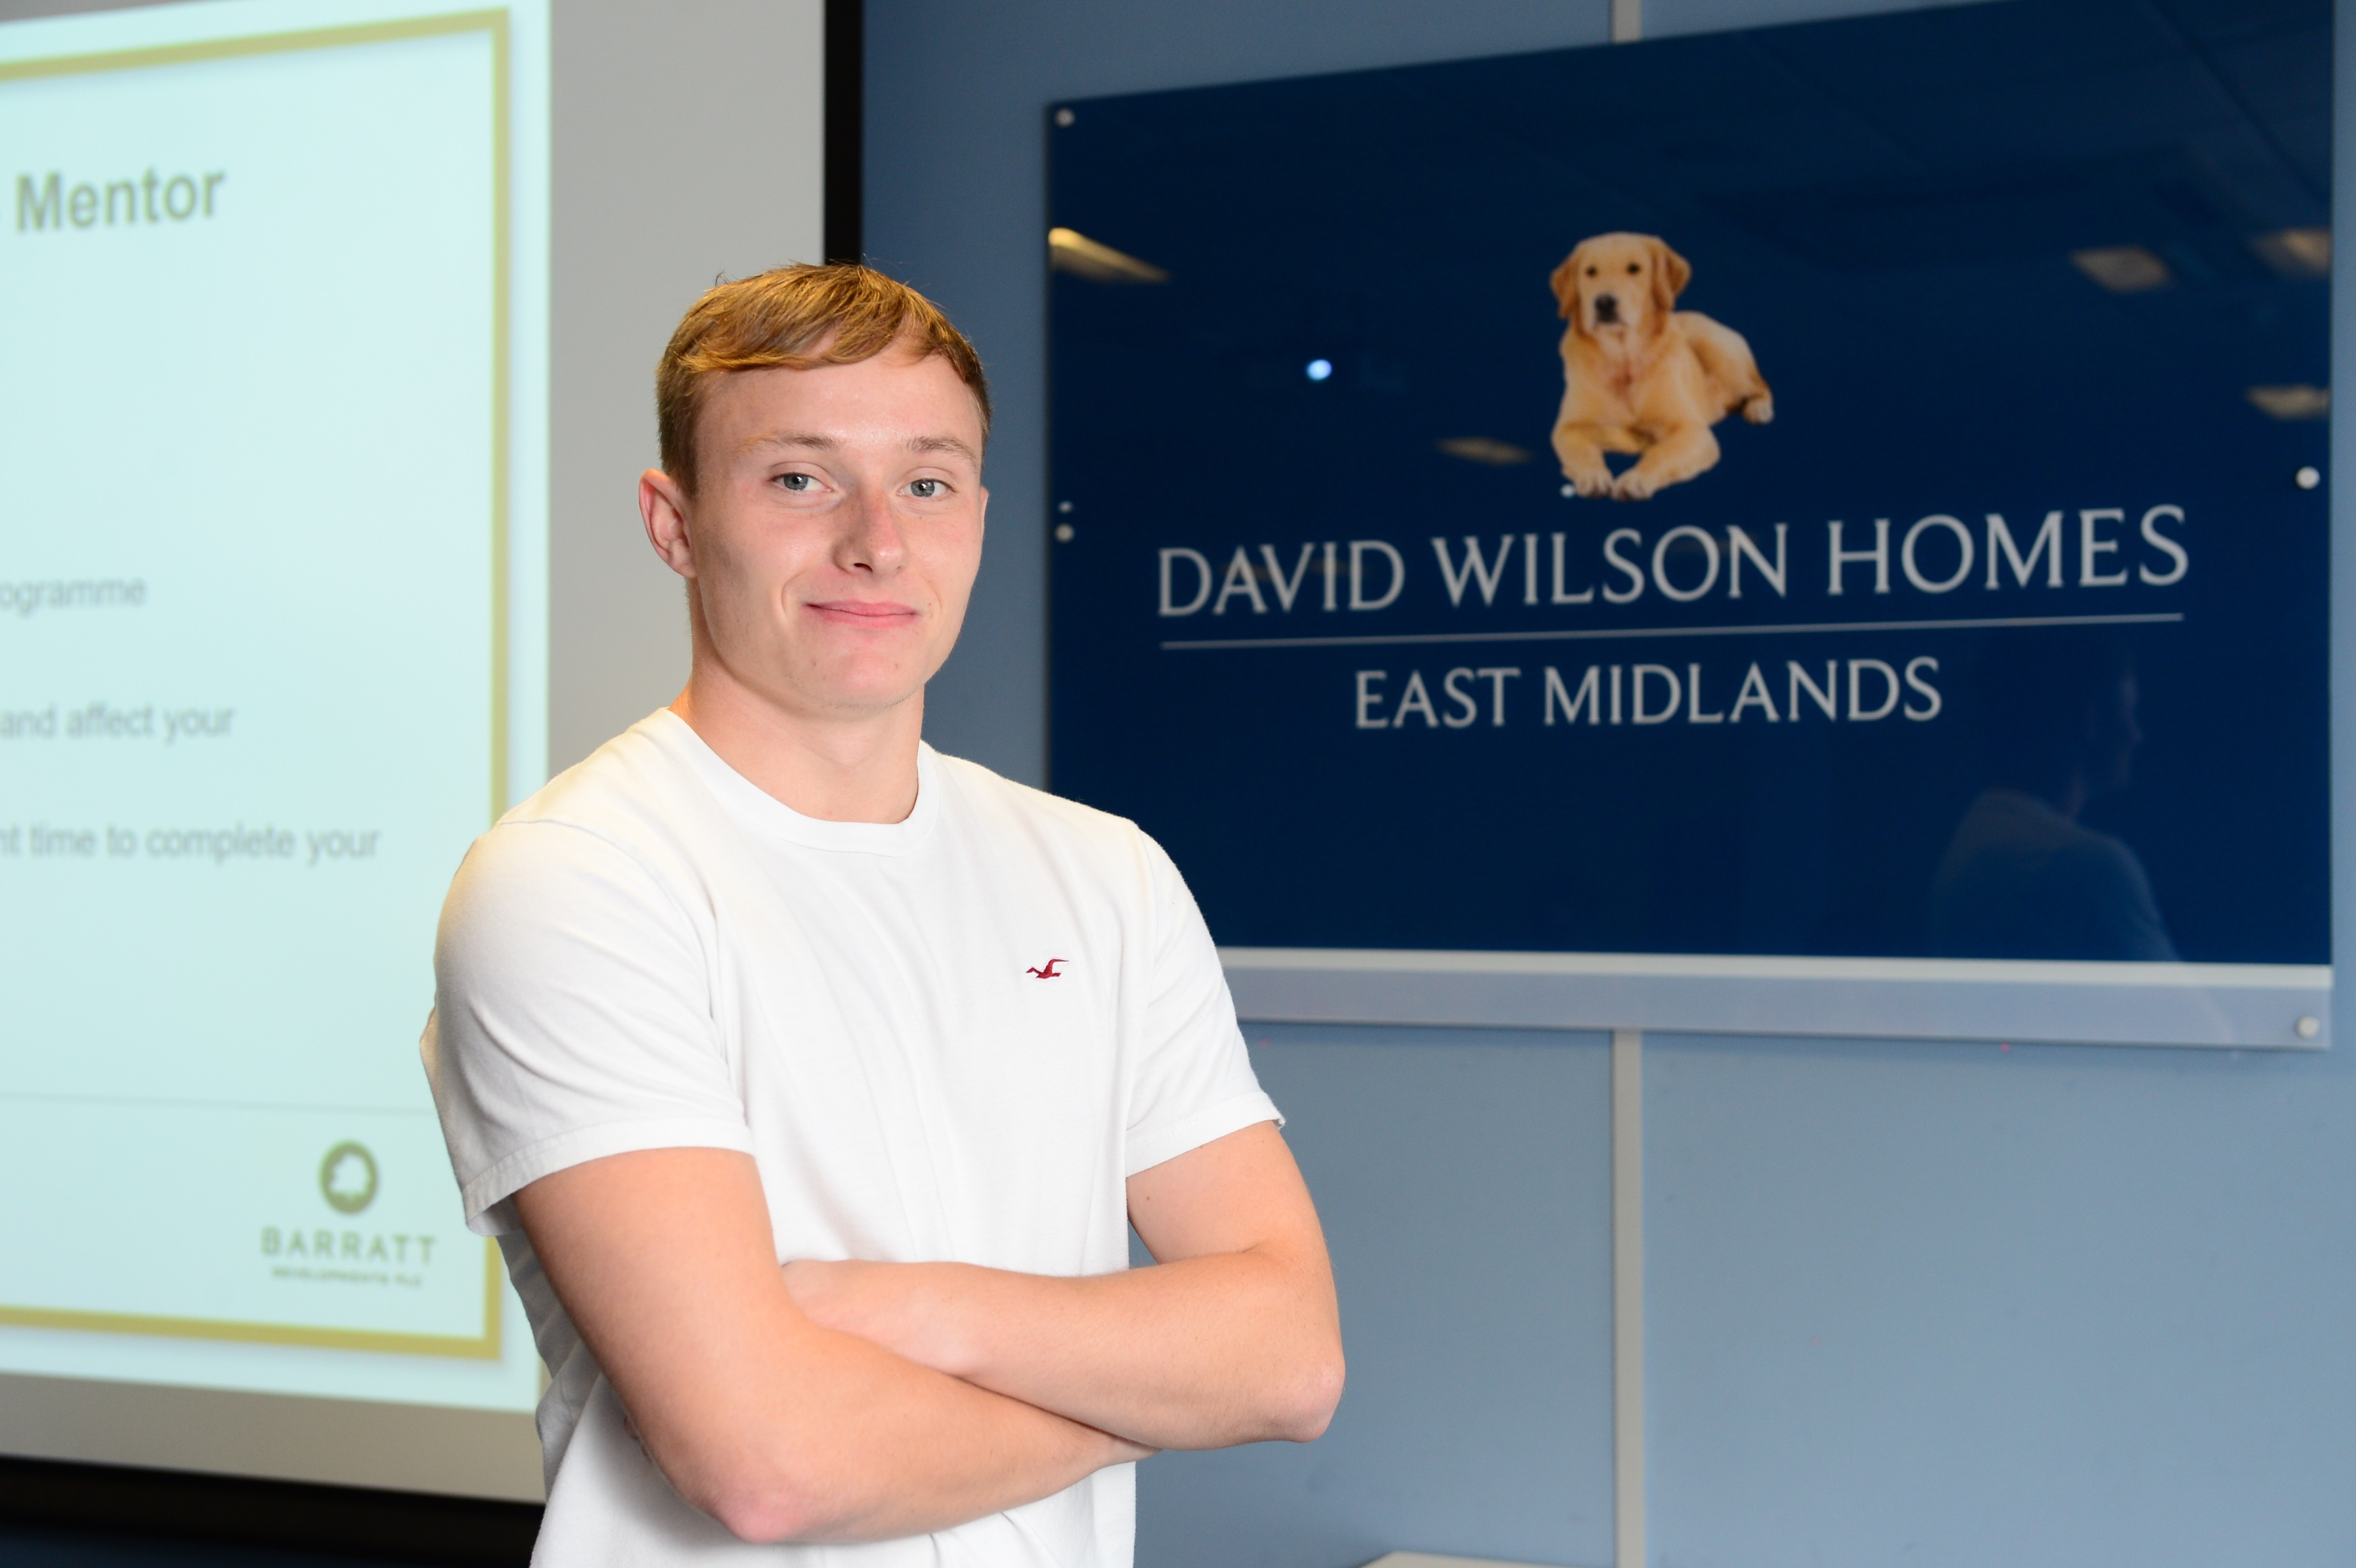 LEICESTERSHIRE HOMEBUILDER'S LATEST APPRENTICES LOOK AHEAD TO CAREERS IN CONSTRUCTION